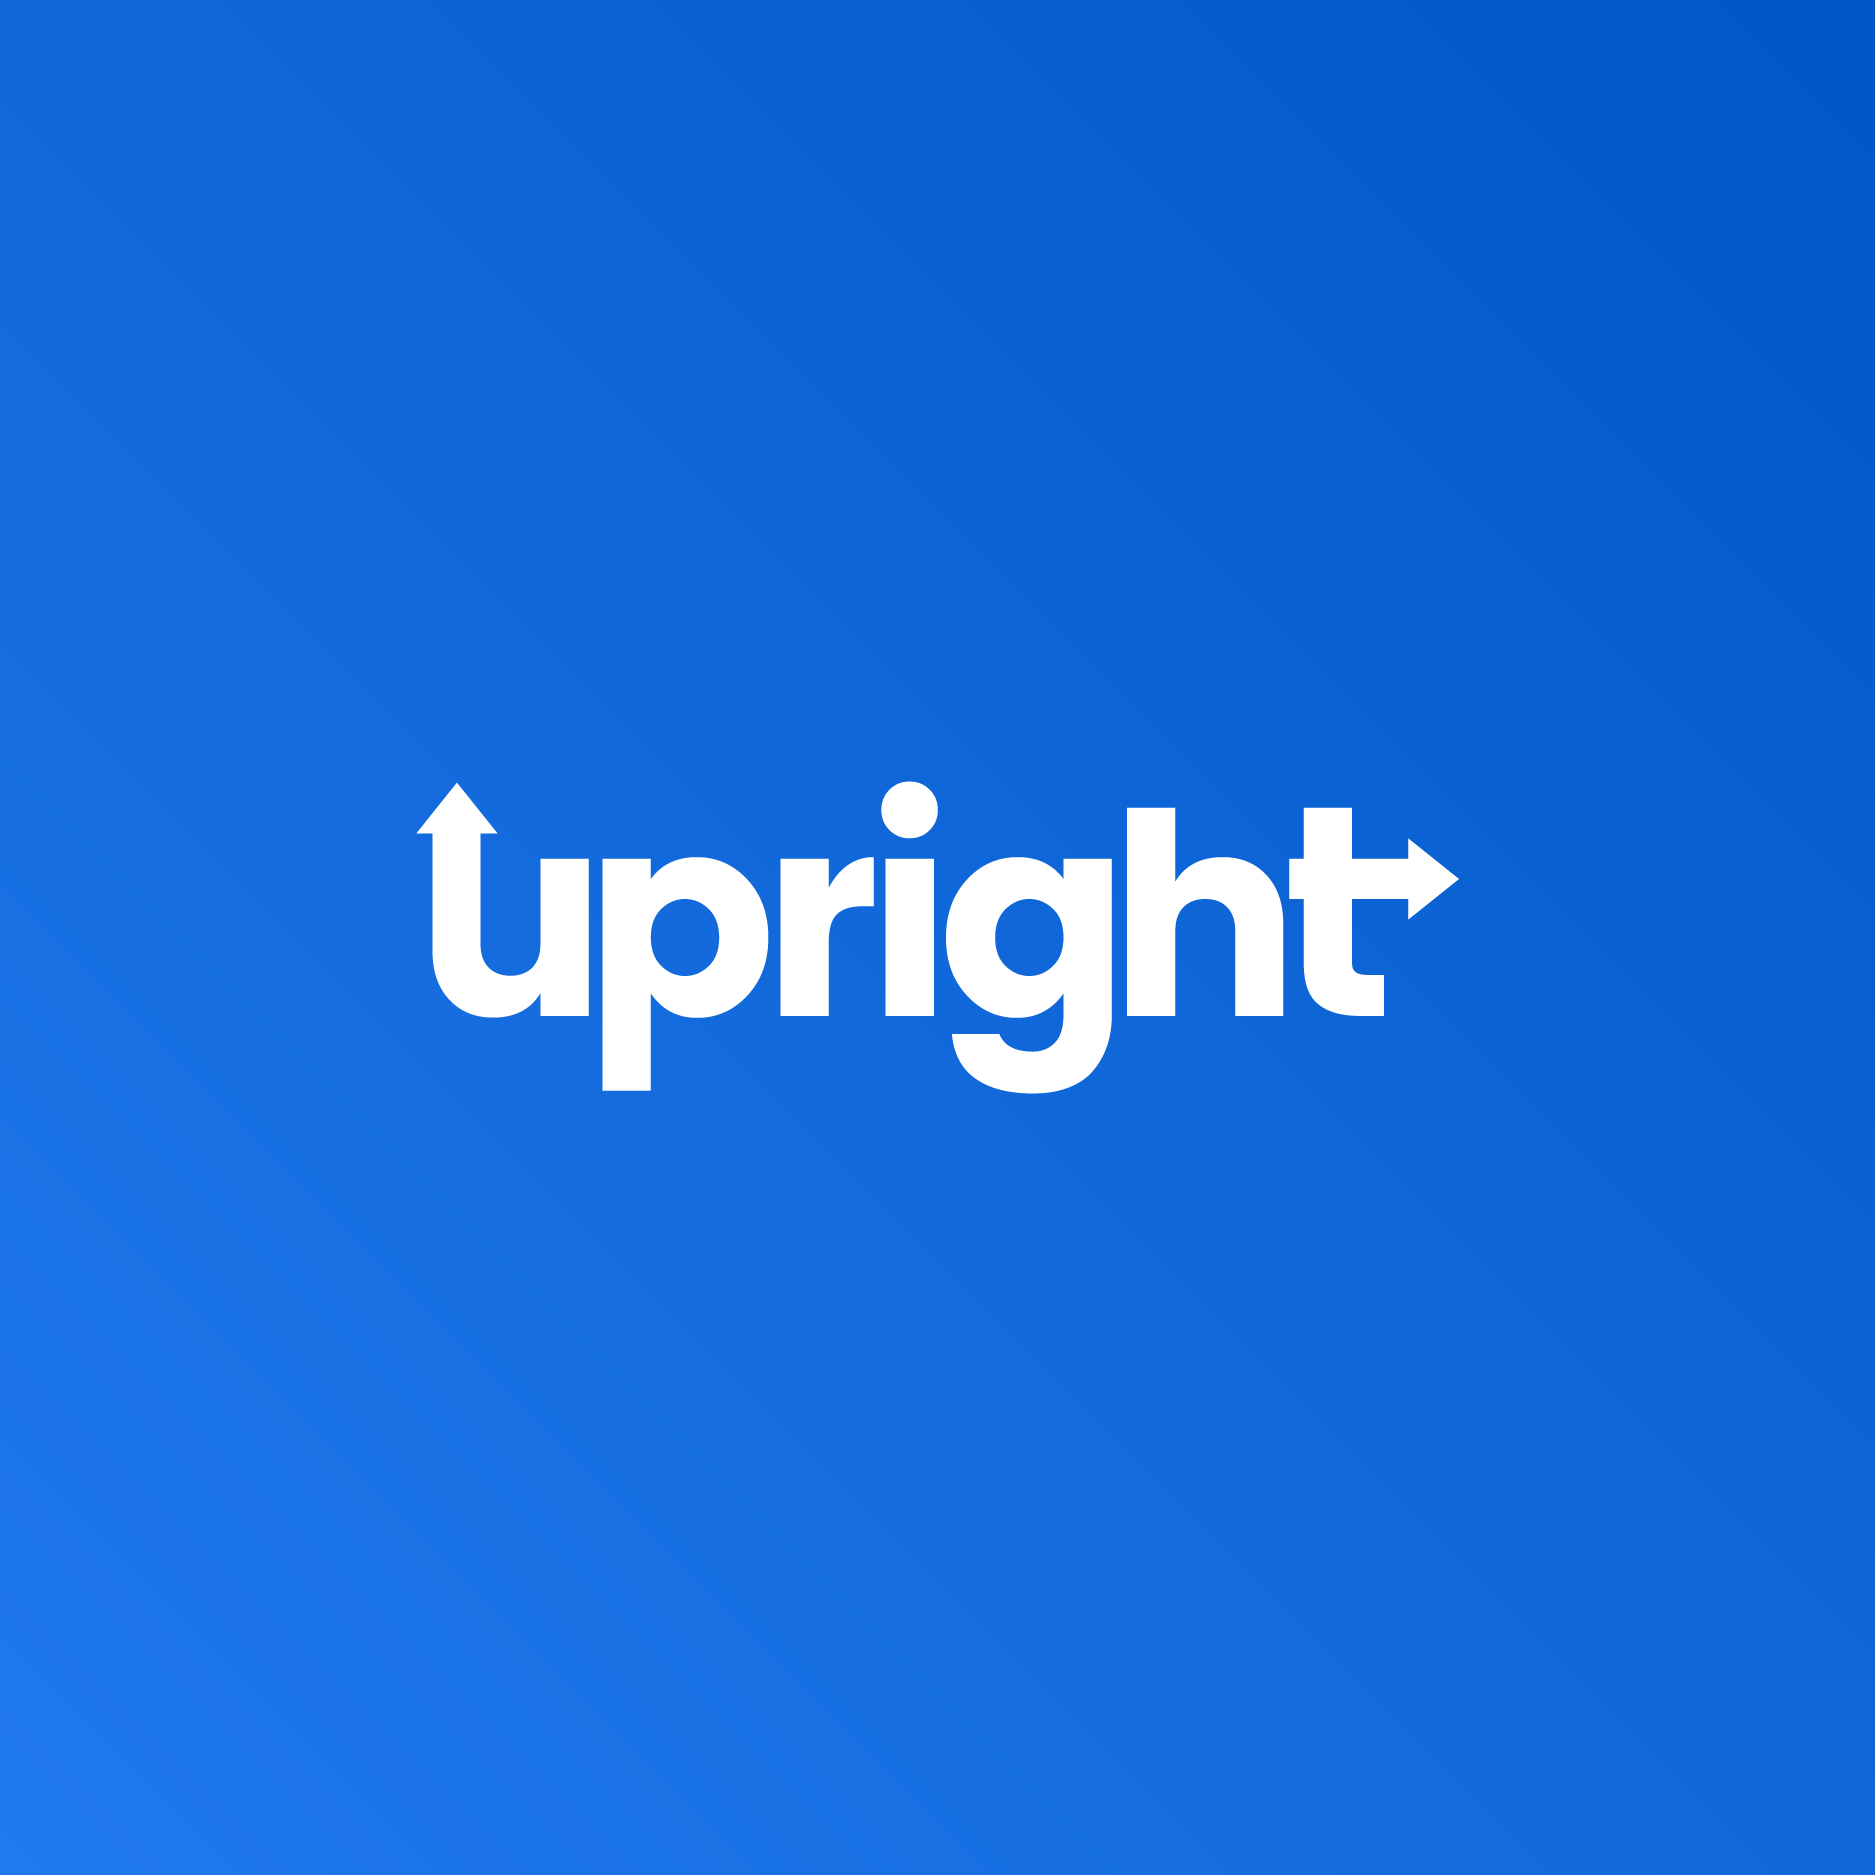 upright logo